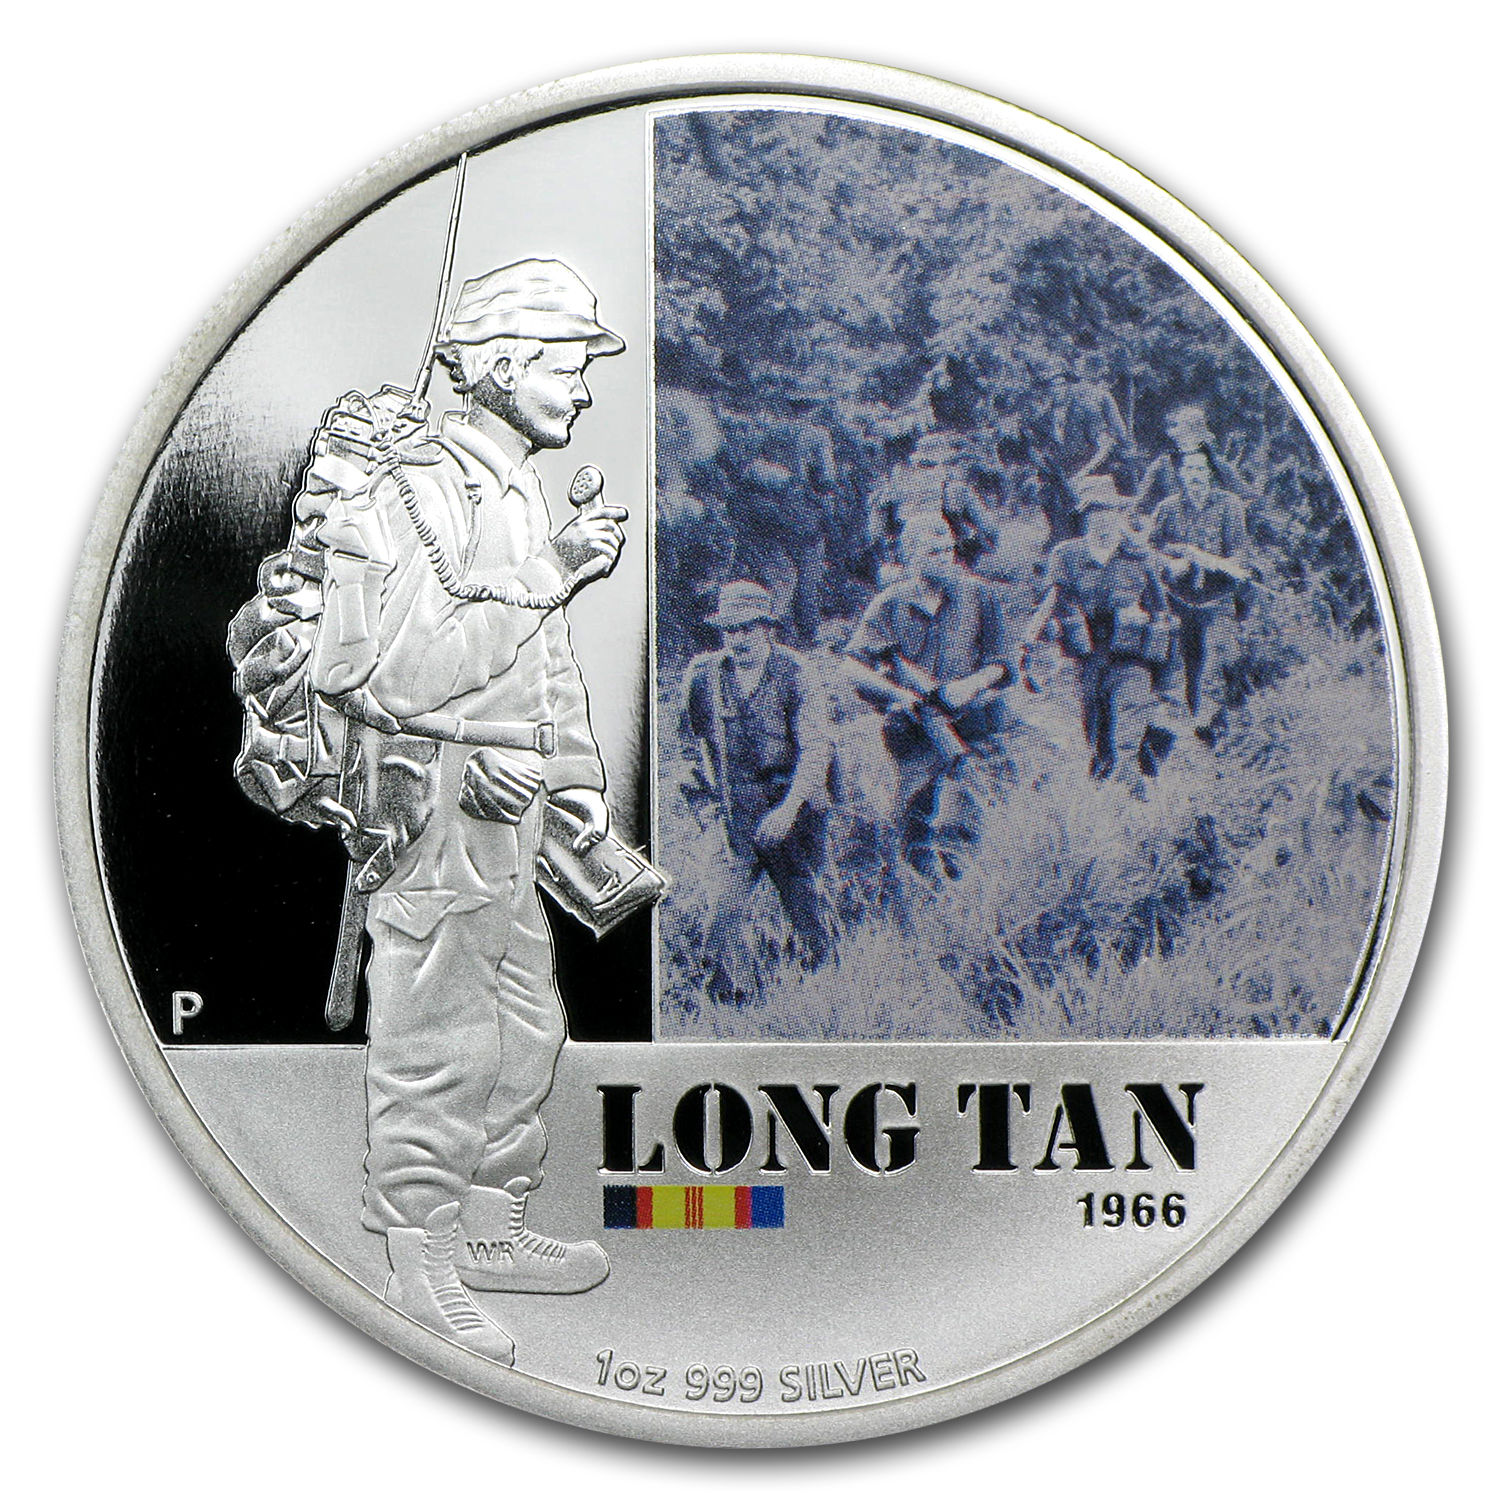 2012 1 oz Proof Silver Battle of Long Tan - Australian History